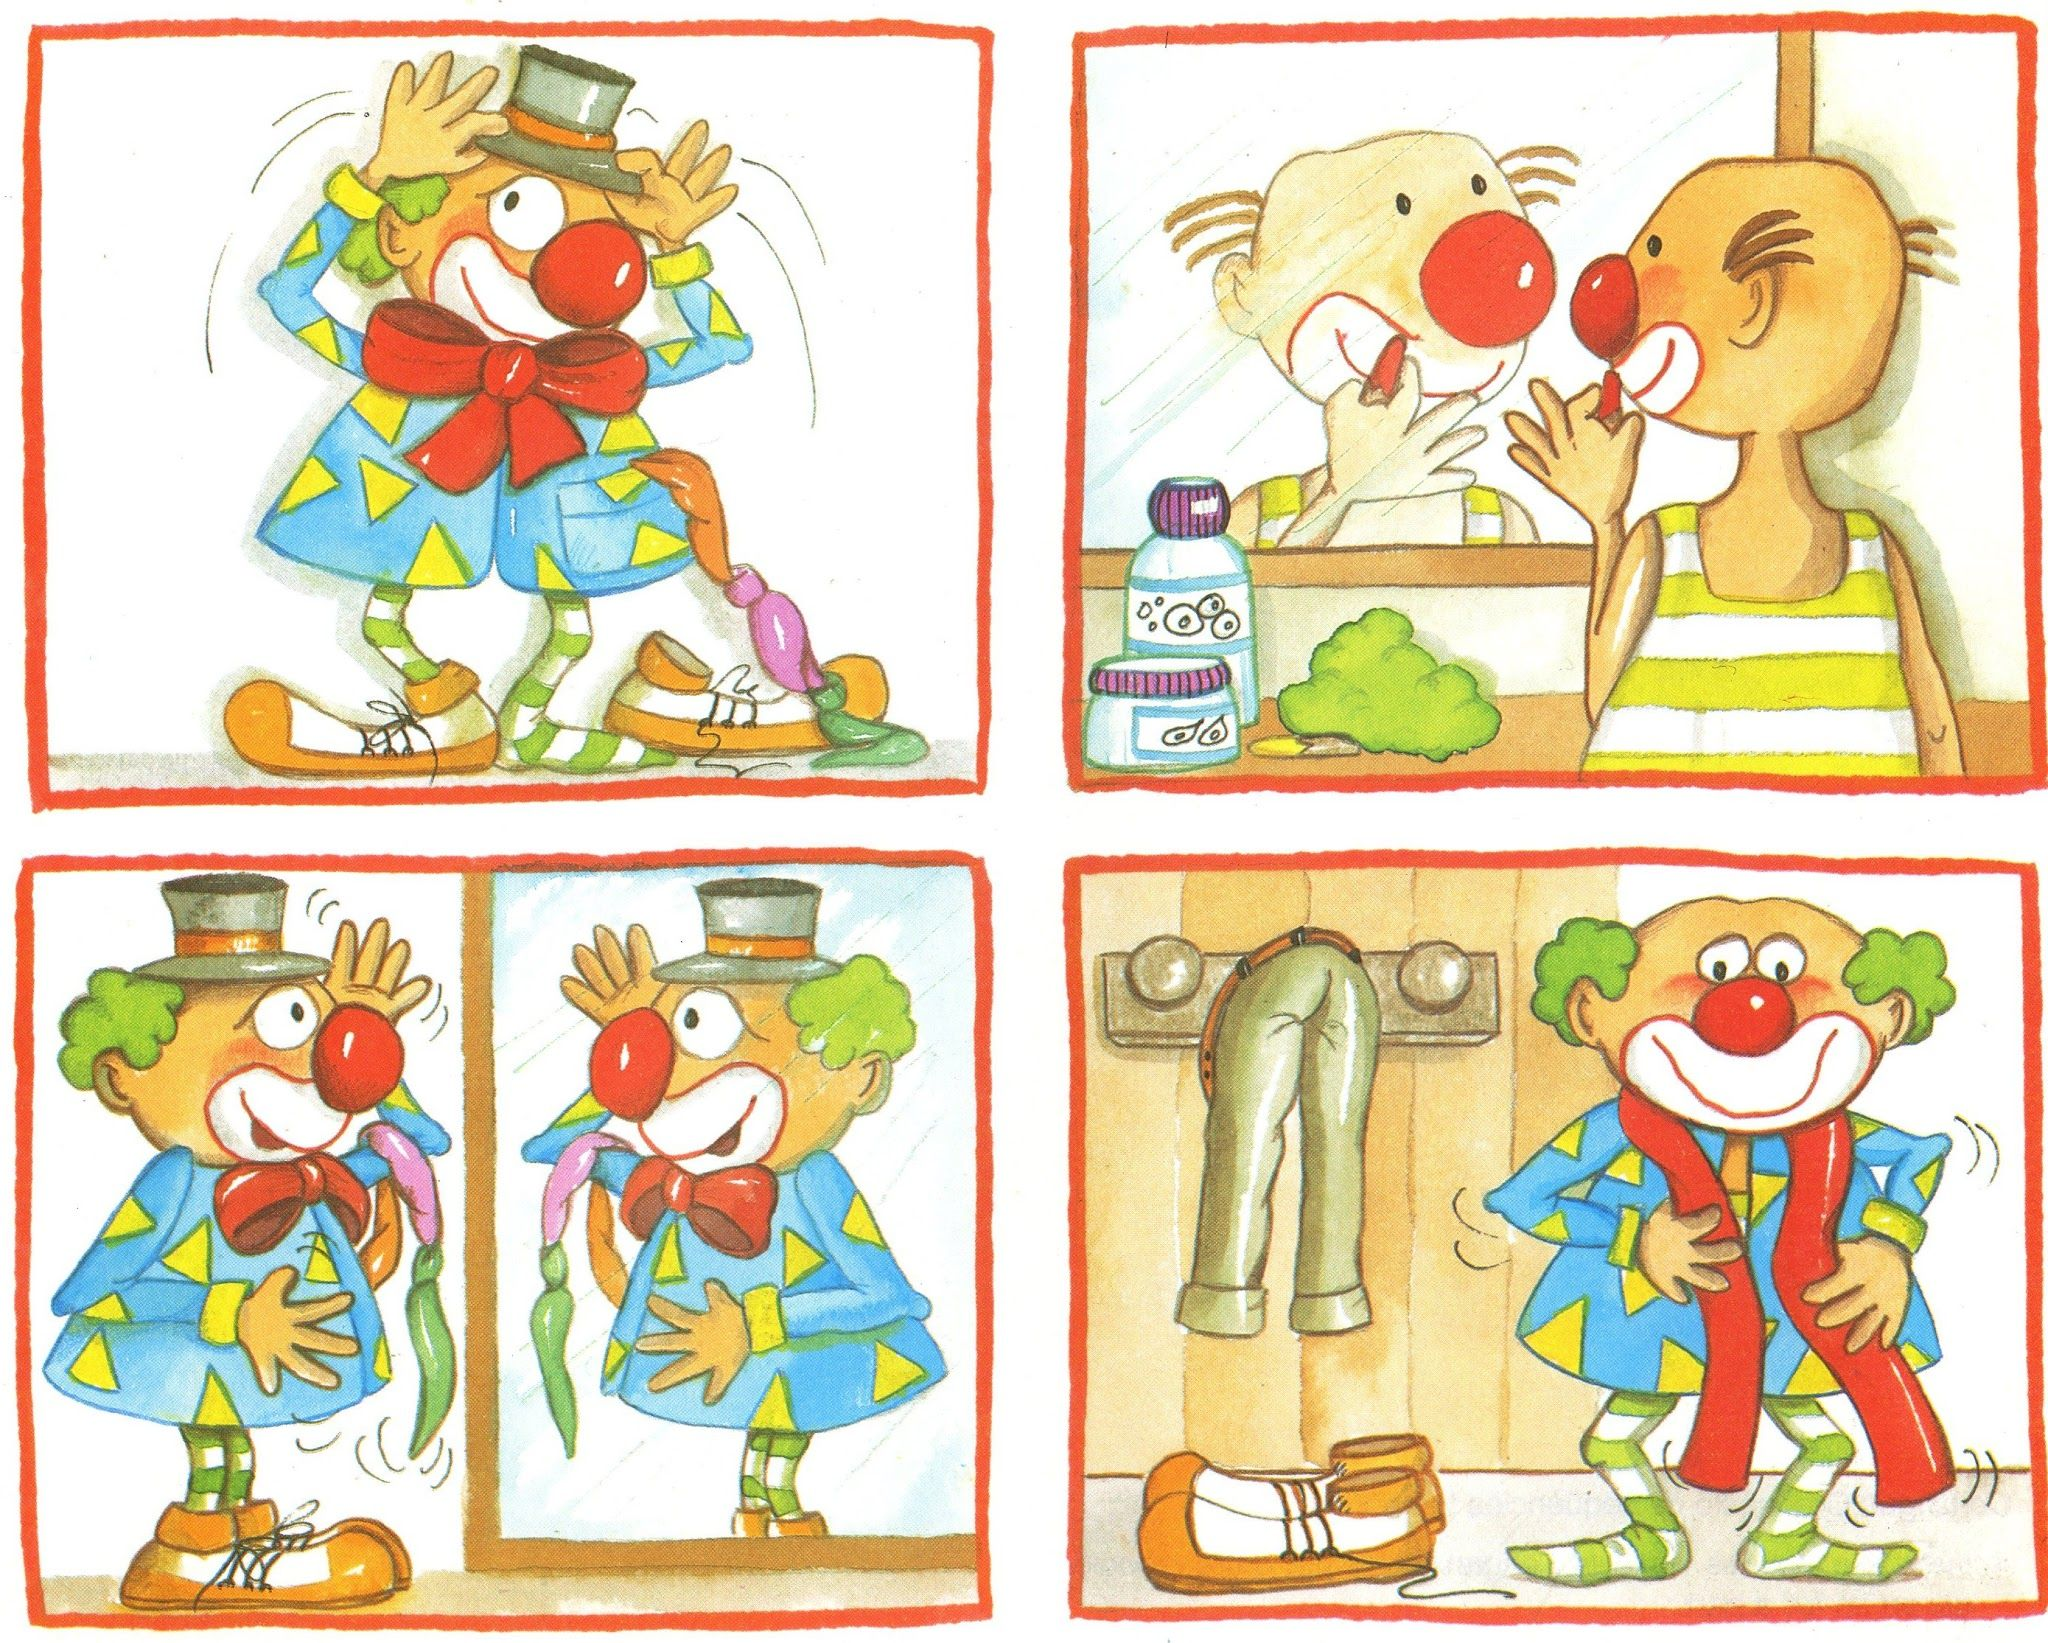 Images Sequentiel Clown